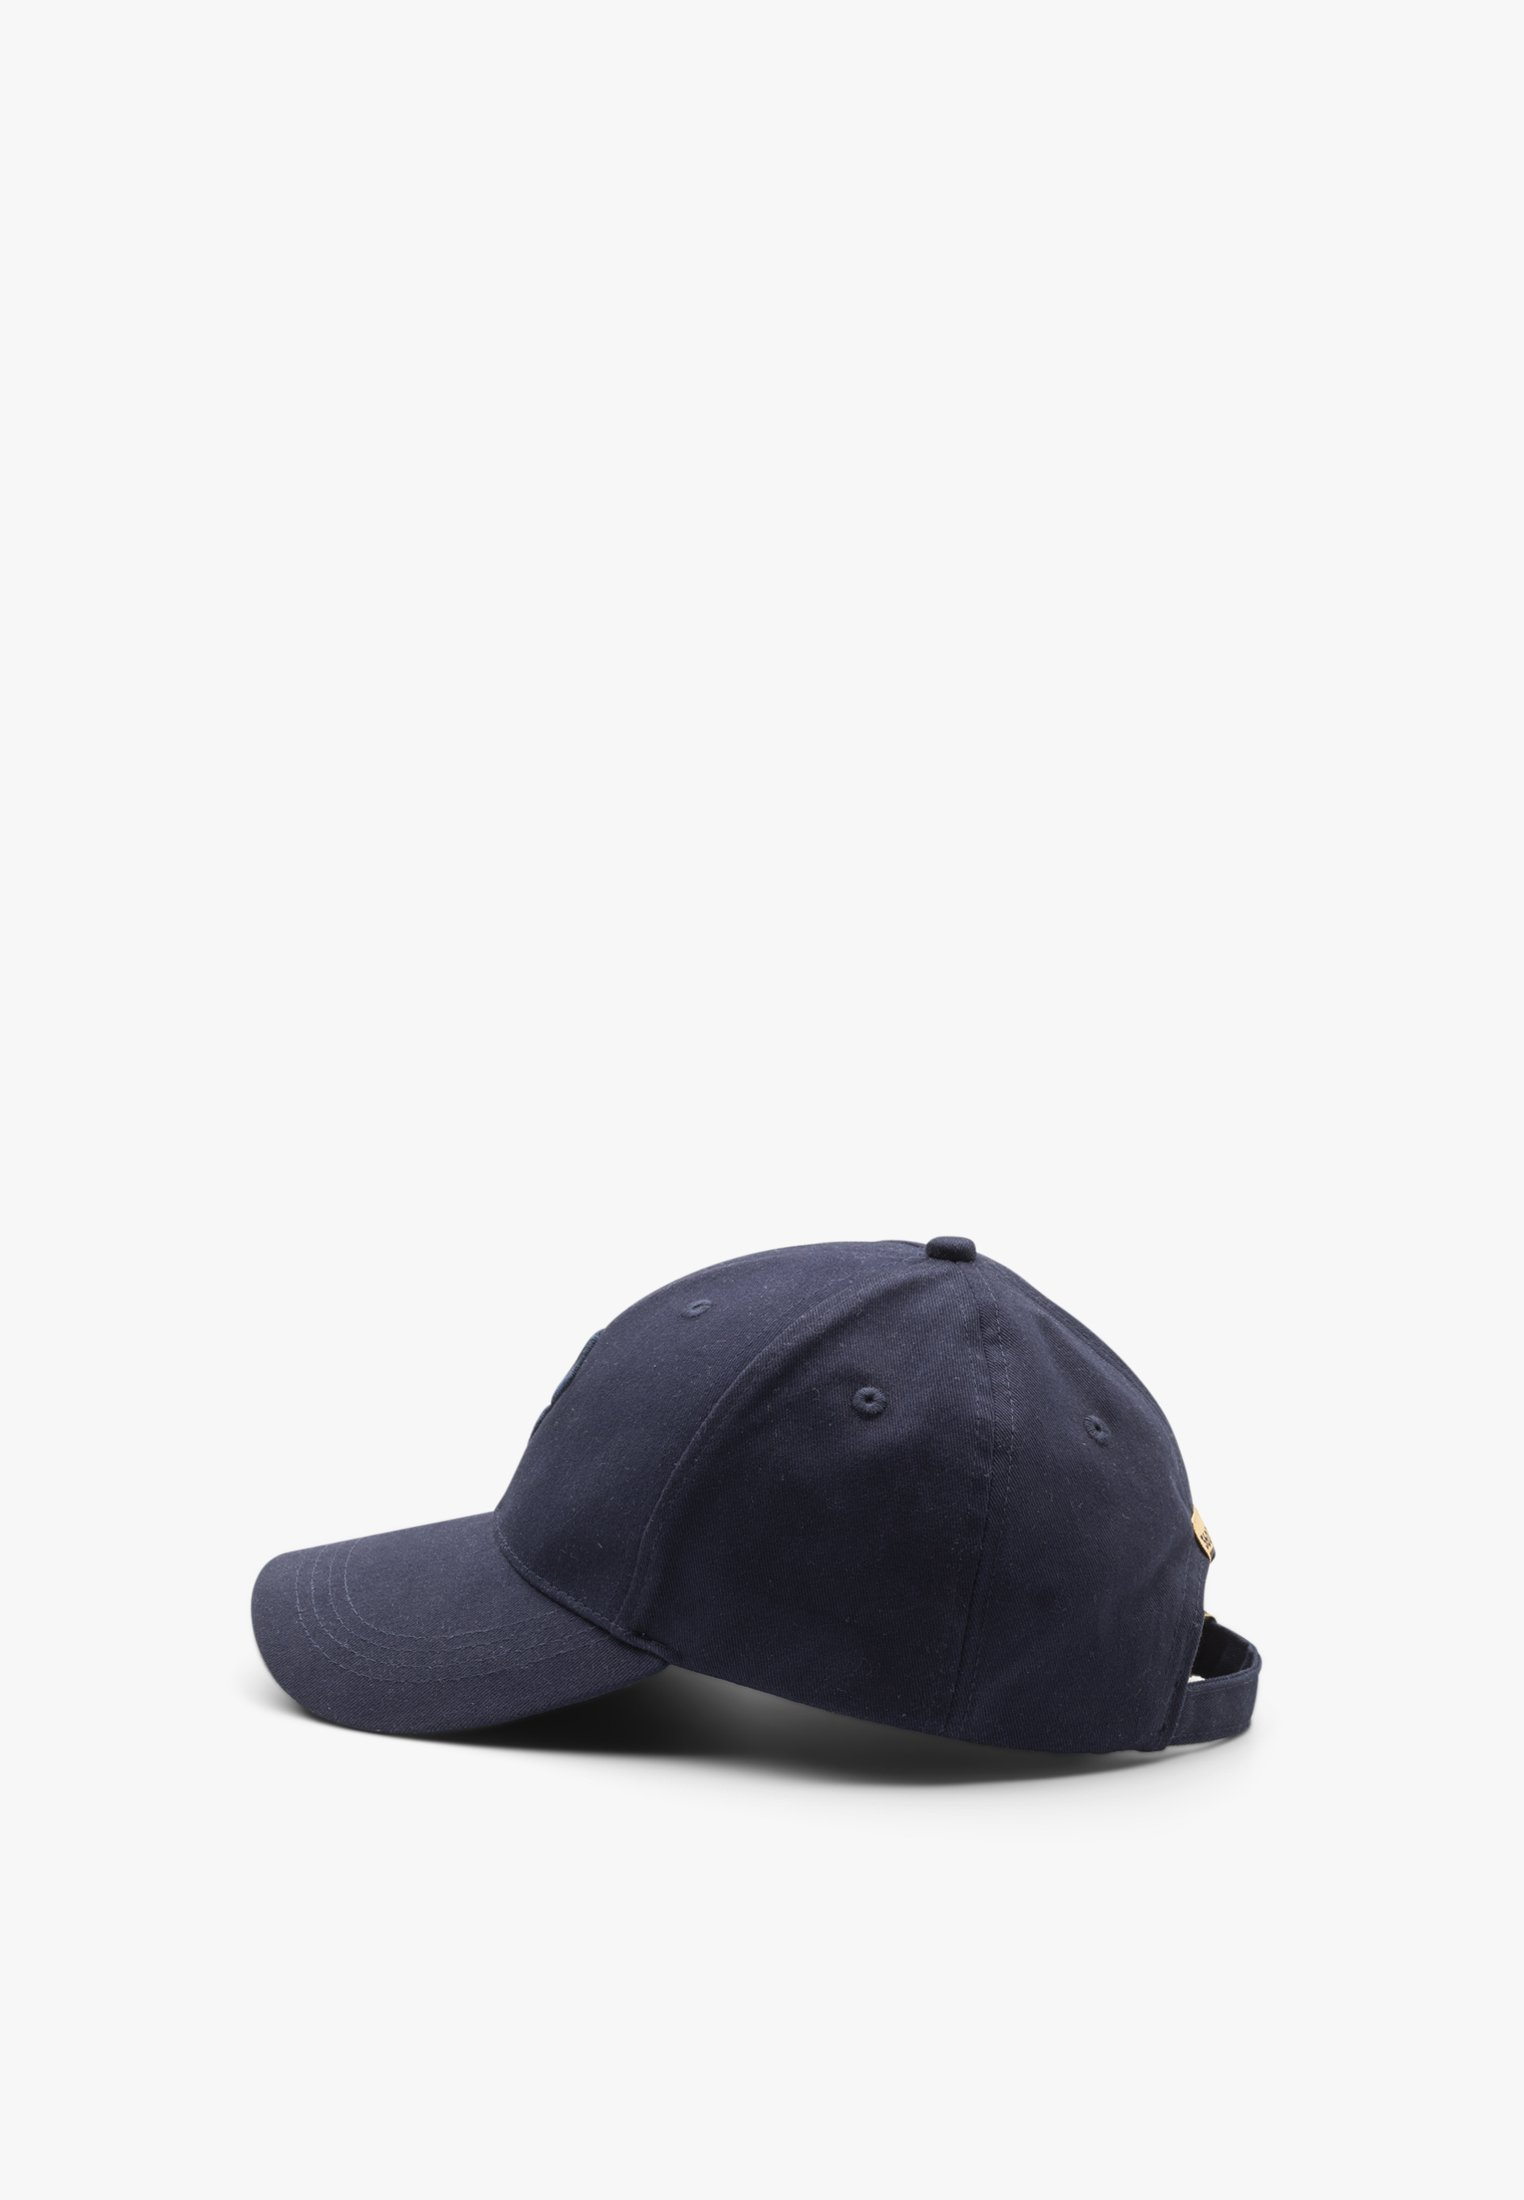 Homme LIMITED TO 360 PIECES  - Casquette